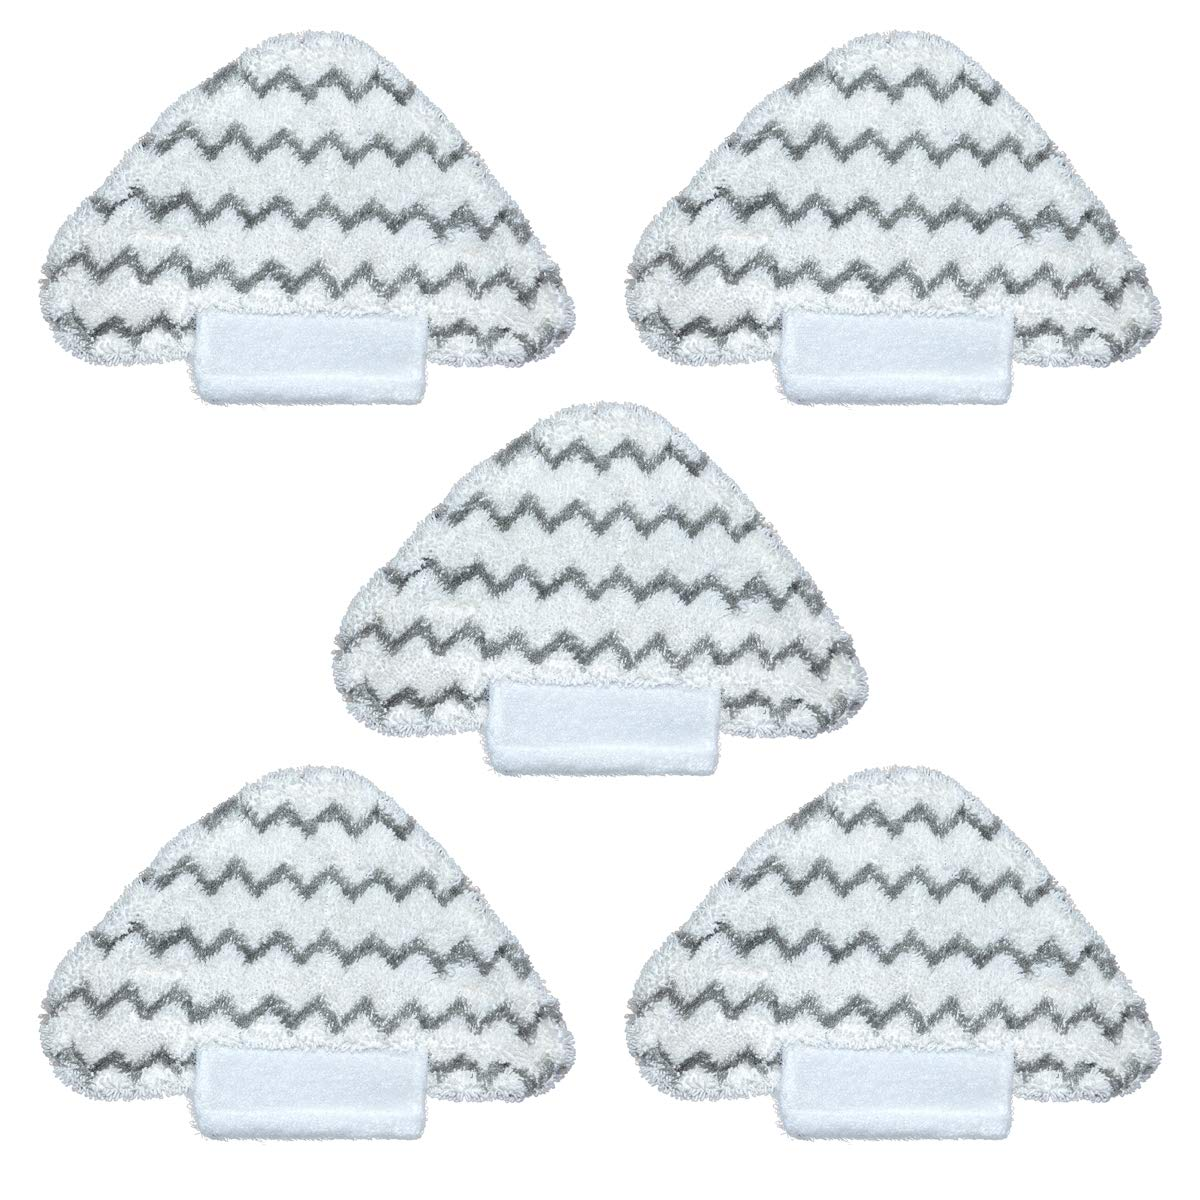 Steam Pads for Shark Lift-Away Pro Steam Pocket Mop S6001 S5001 Microfiber Steam Mop Pad for Shark S3973D S6002 S6003 Dirt Grip Pad Vacuum Cleaner Part Replacement 5PCS by Julai